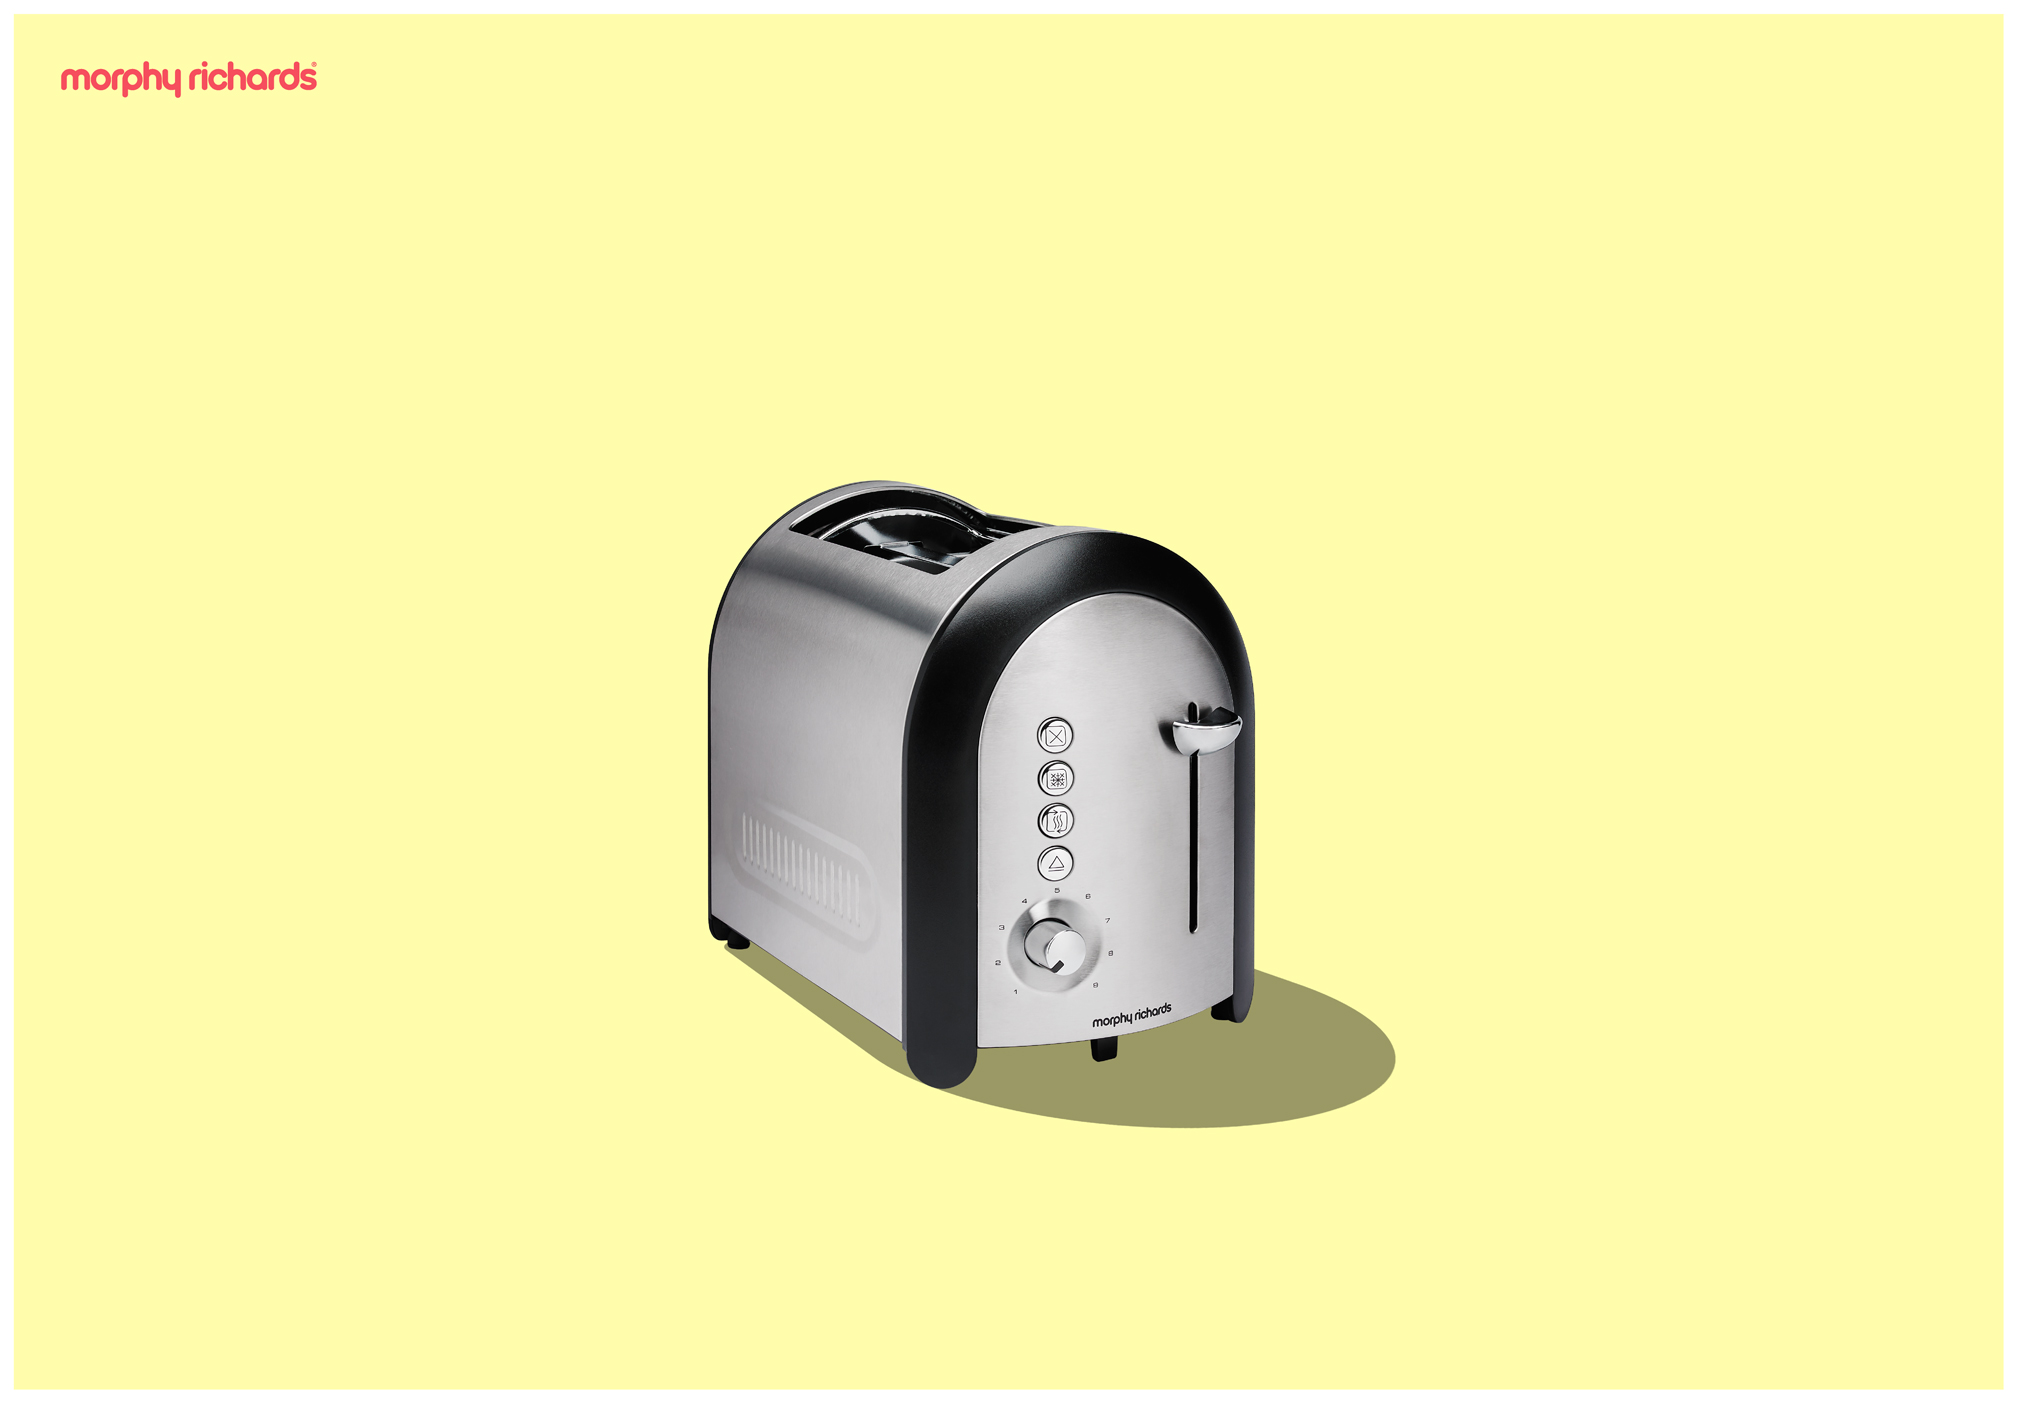 morphy richards, Toaster, product, product photography